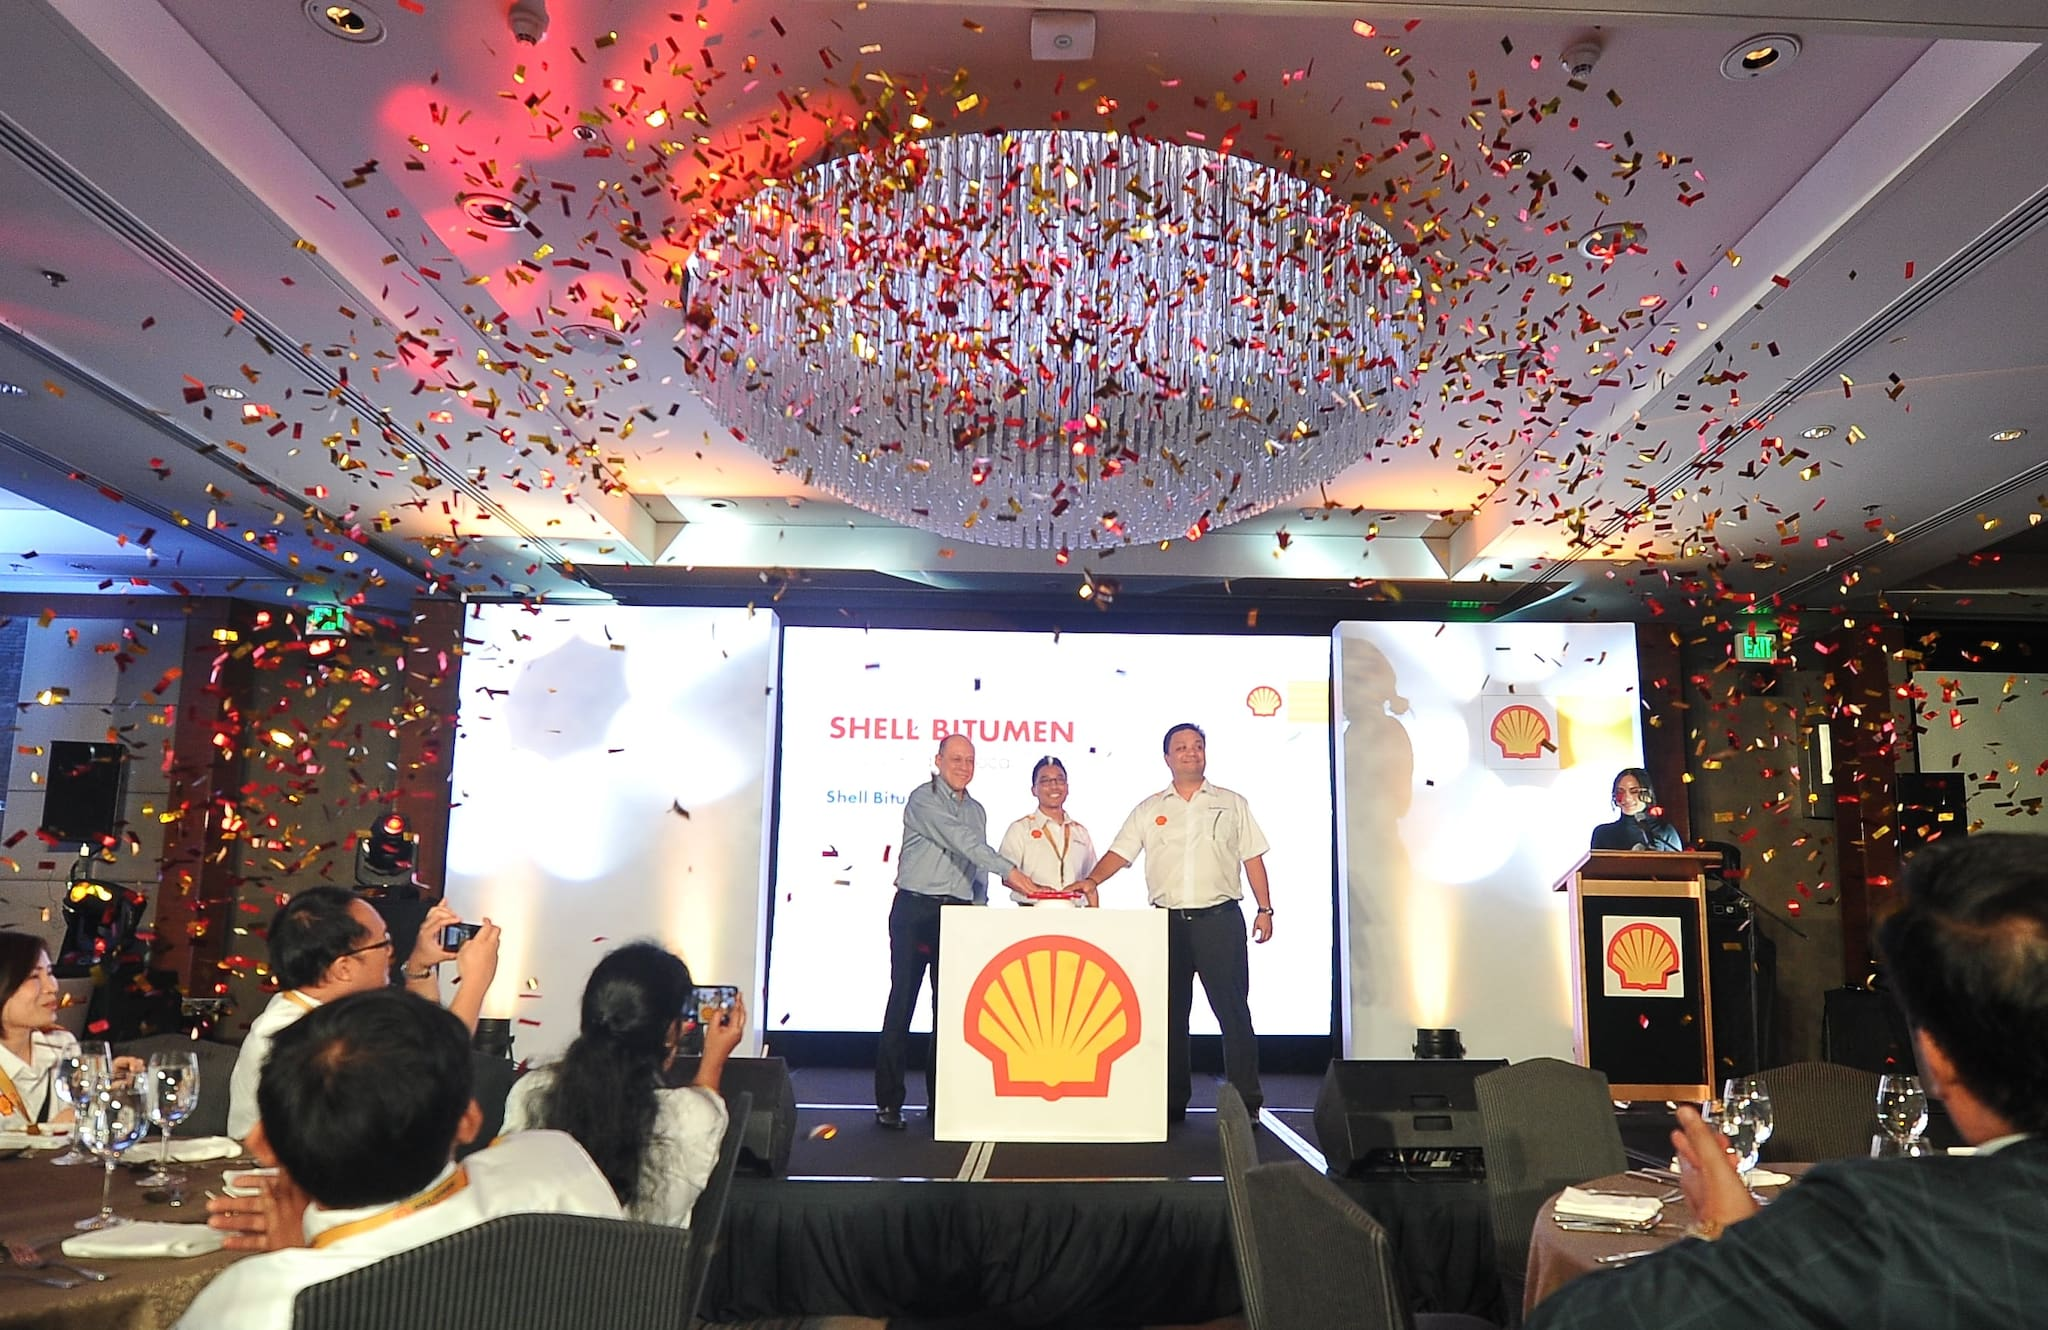 Shell Completes PH's First-Ever Batch of Locally-Blended Bitumen